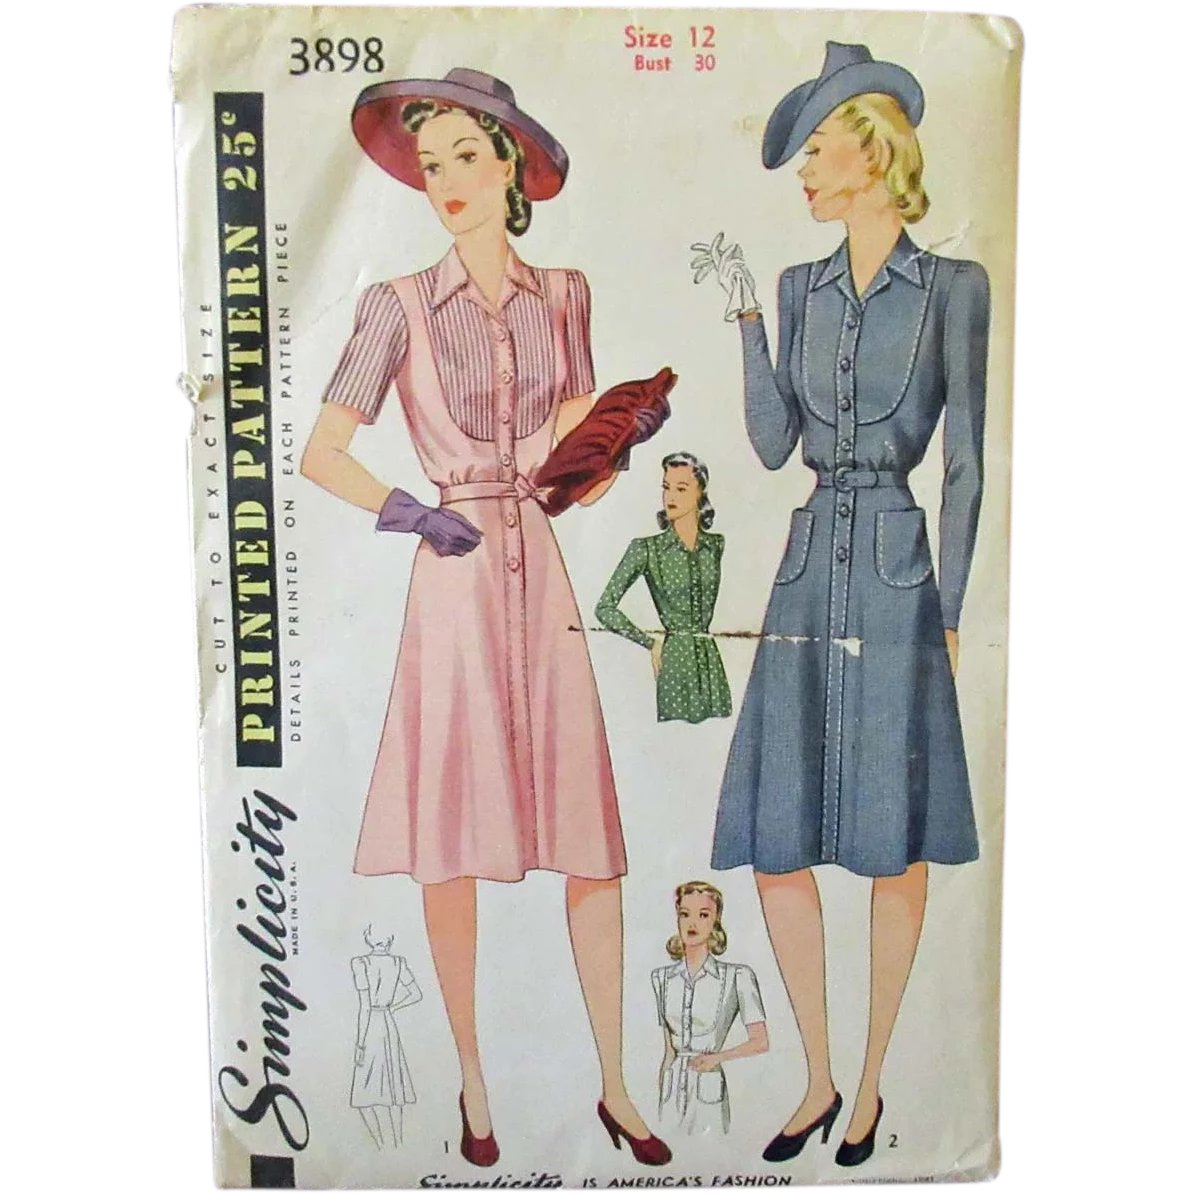 Vintage Sewing Pattern 1940s Simplicity 4498 House Coat or Dress 32 Bust Free Pattern Grading E-book Included